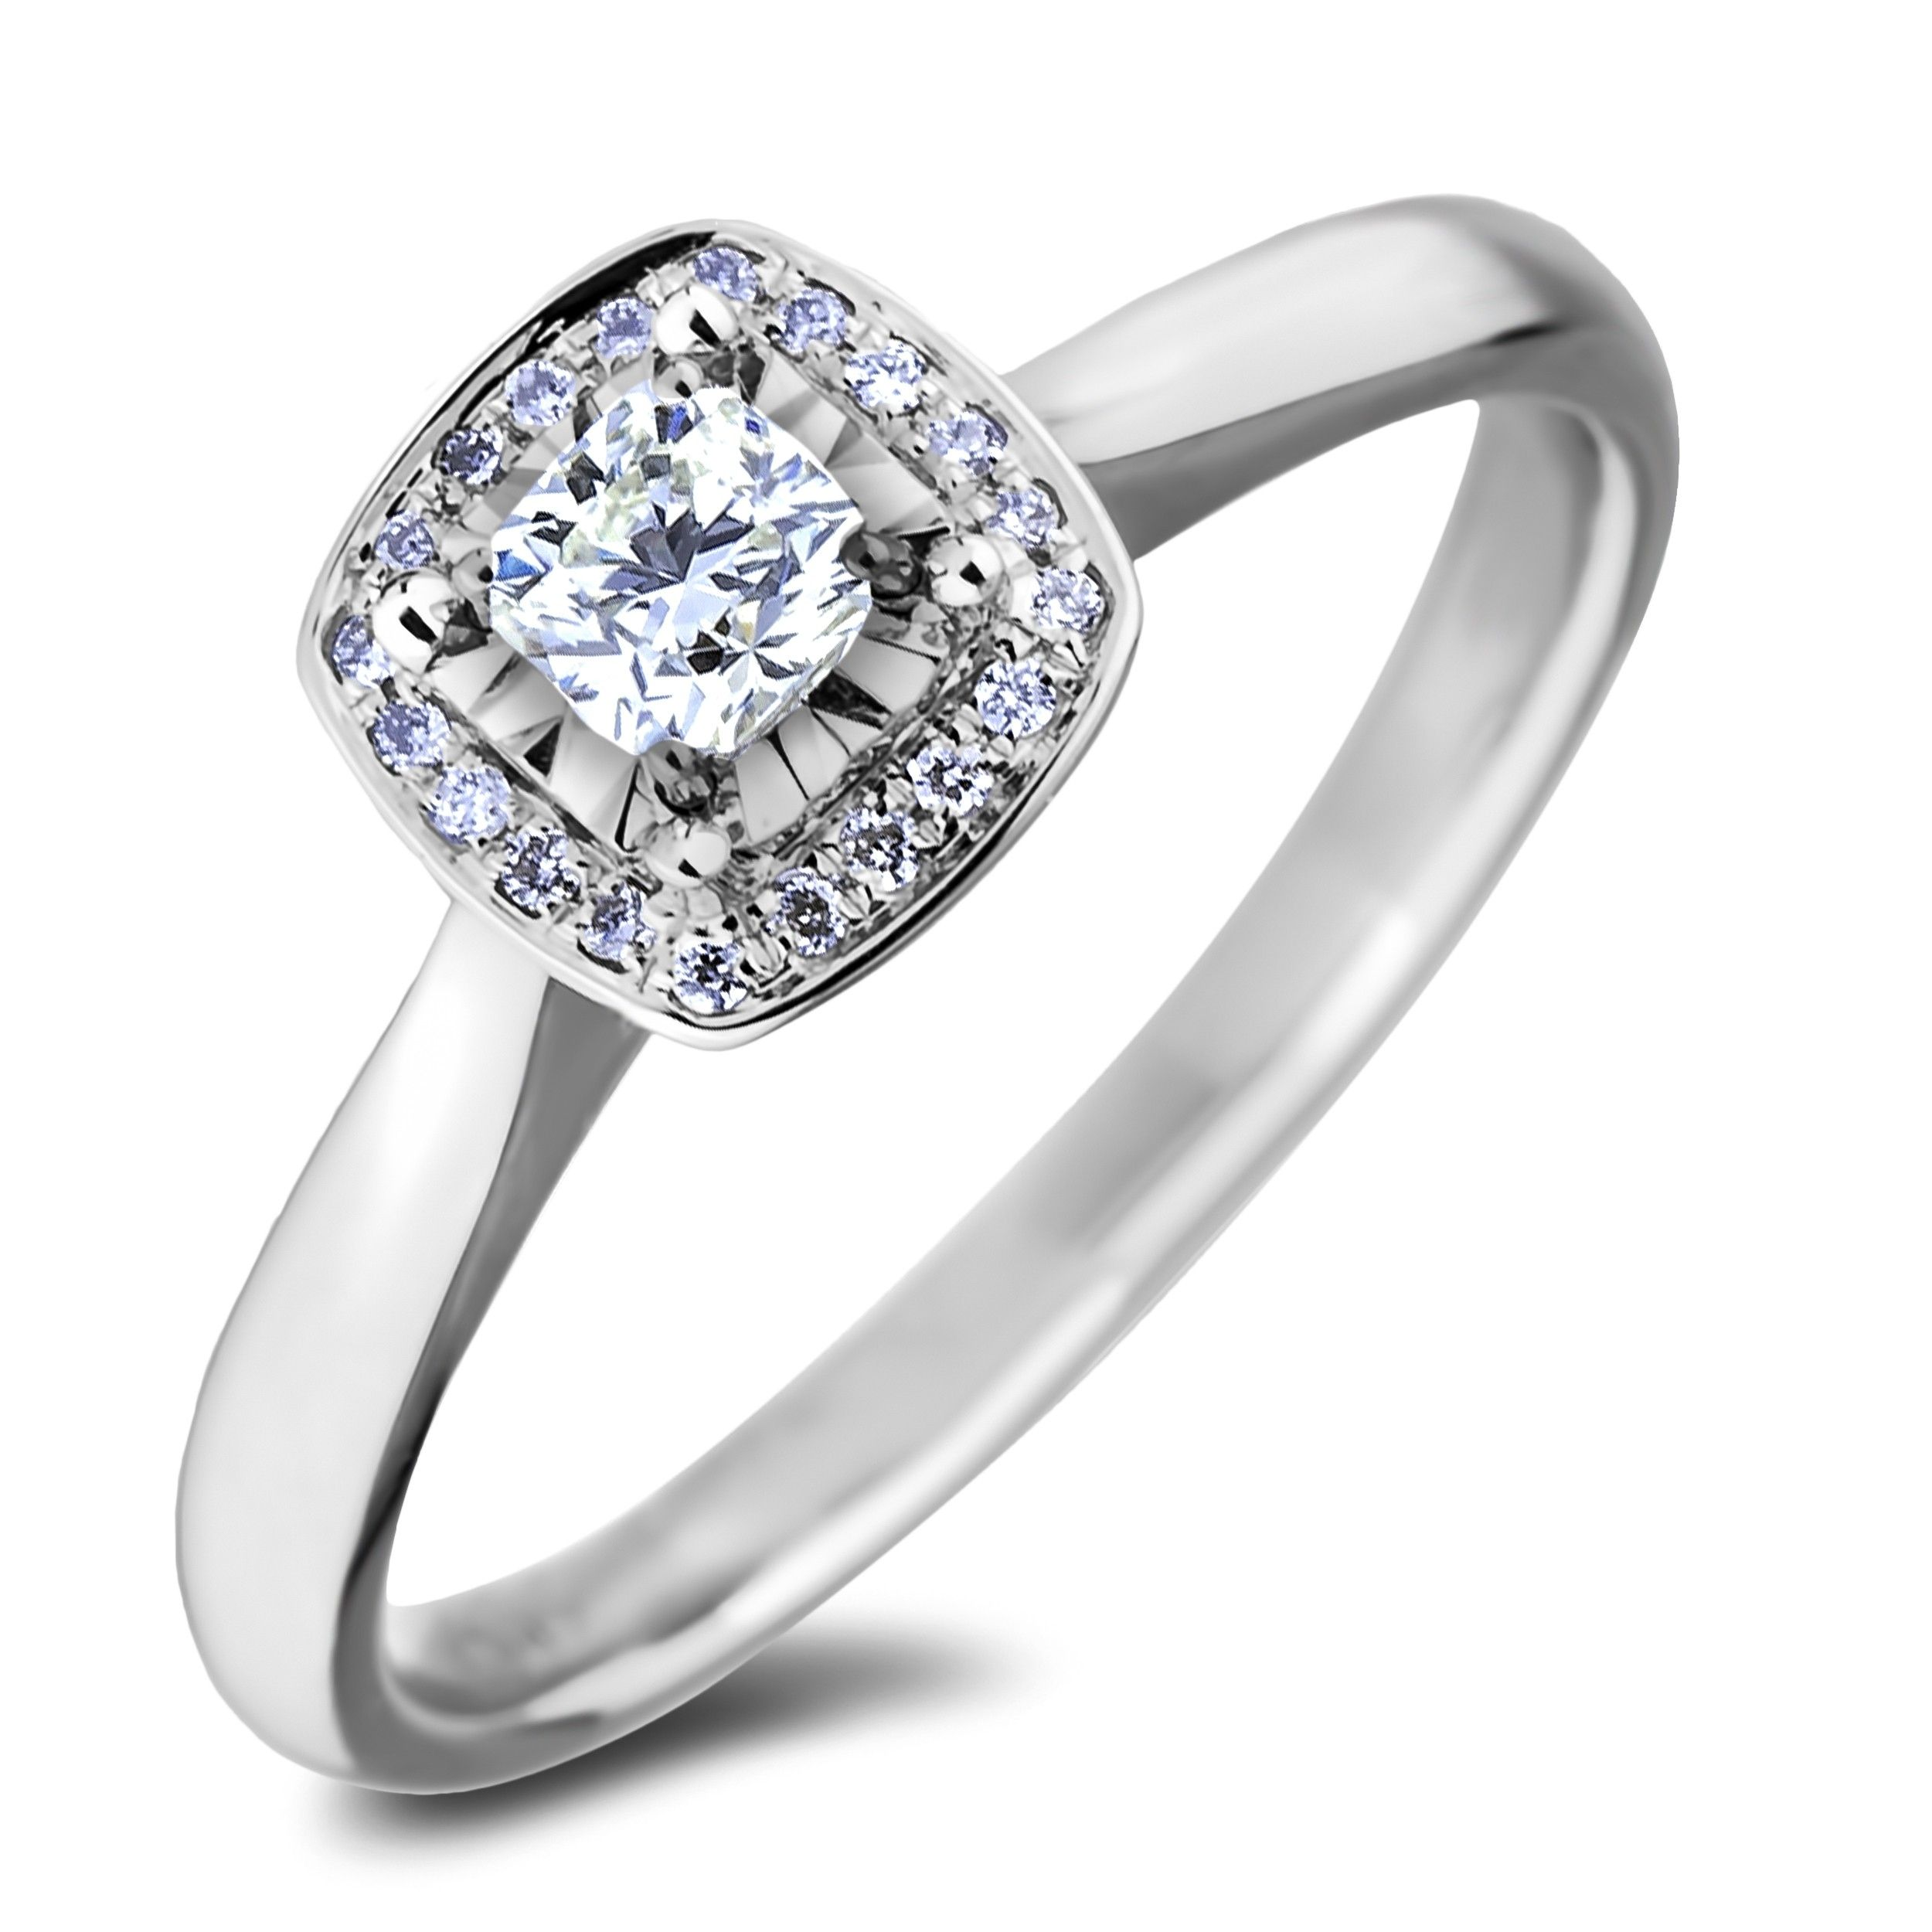 Pin on COLLECTION488 Canadian Diamonds Your Choice 488